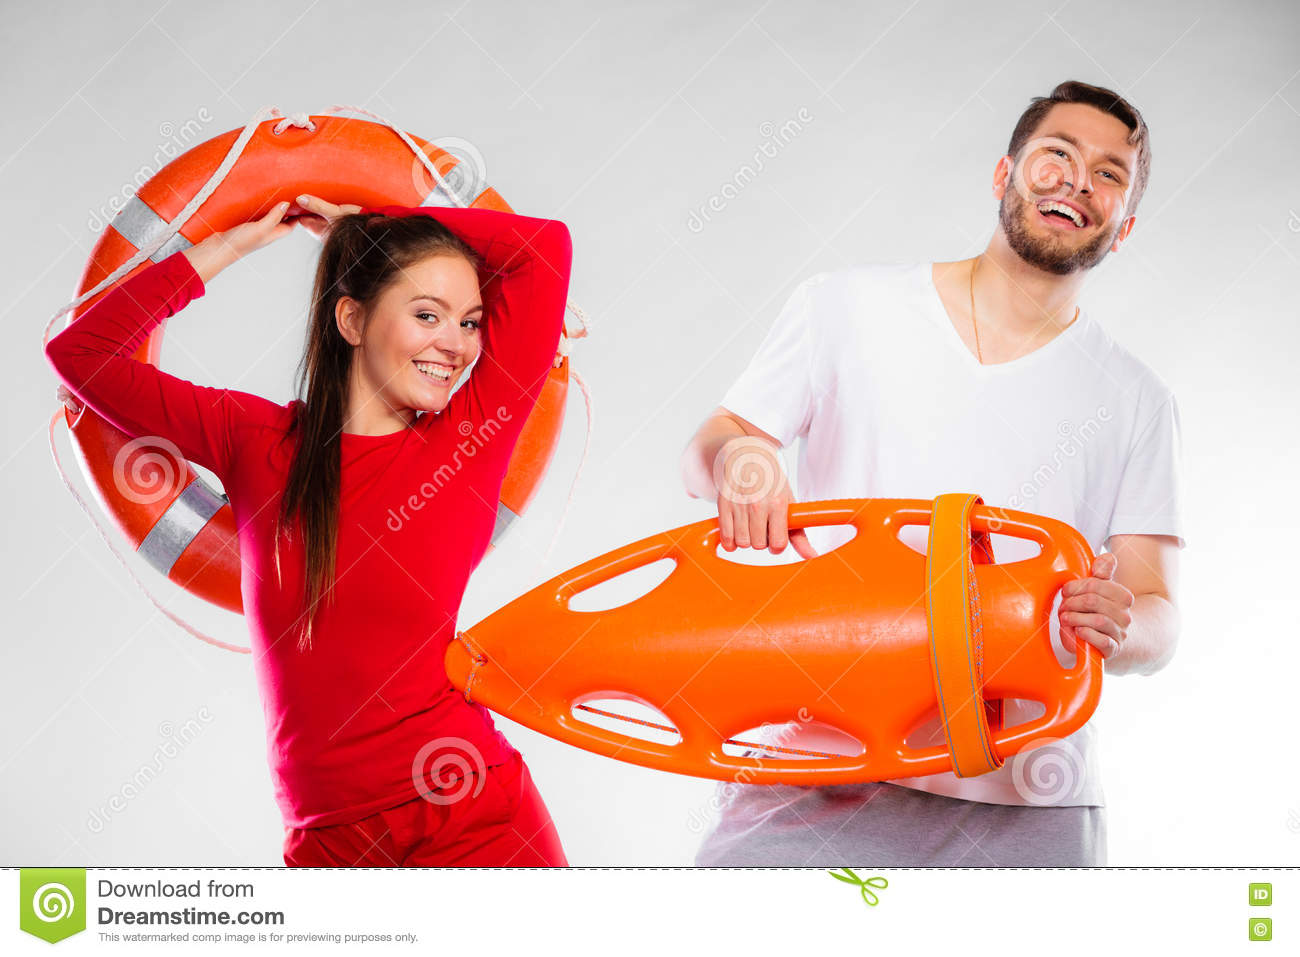 a05c91a66bb Accident prevention and water rescue. Young men and women lifeguard couple  on duty holding ring buoy float lifesaver equipment having fun on gray